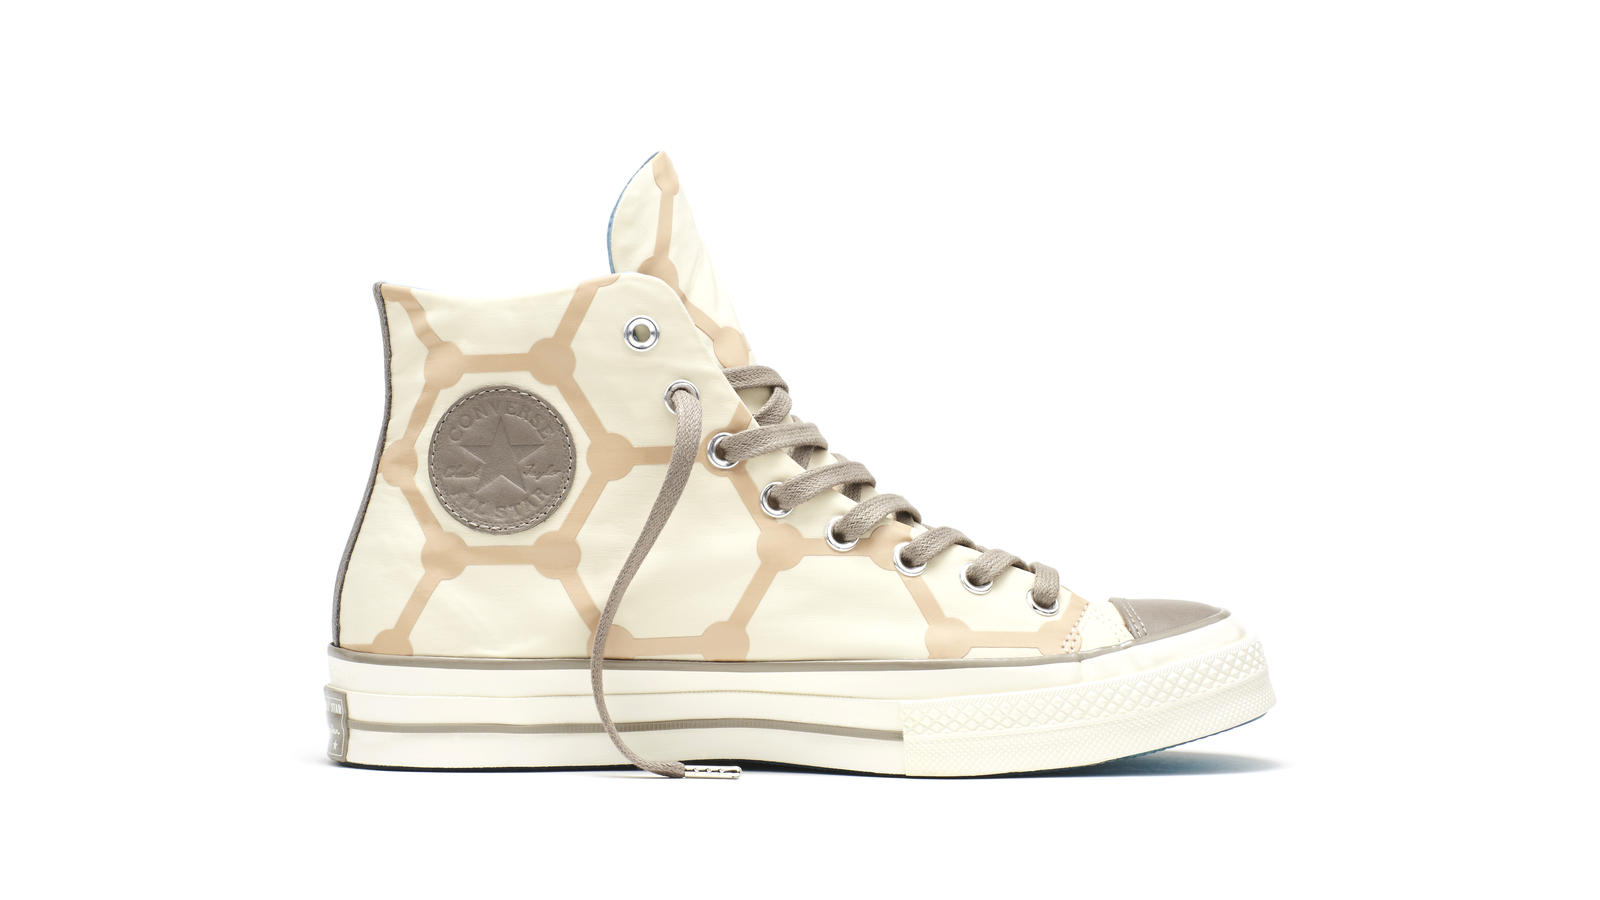 dc1d1eefc637 Converse Chuck Taylor All Star 70 Space Collection Beige Left Original